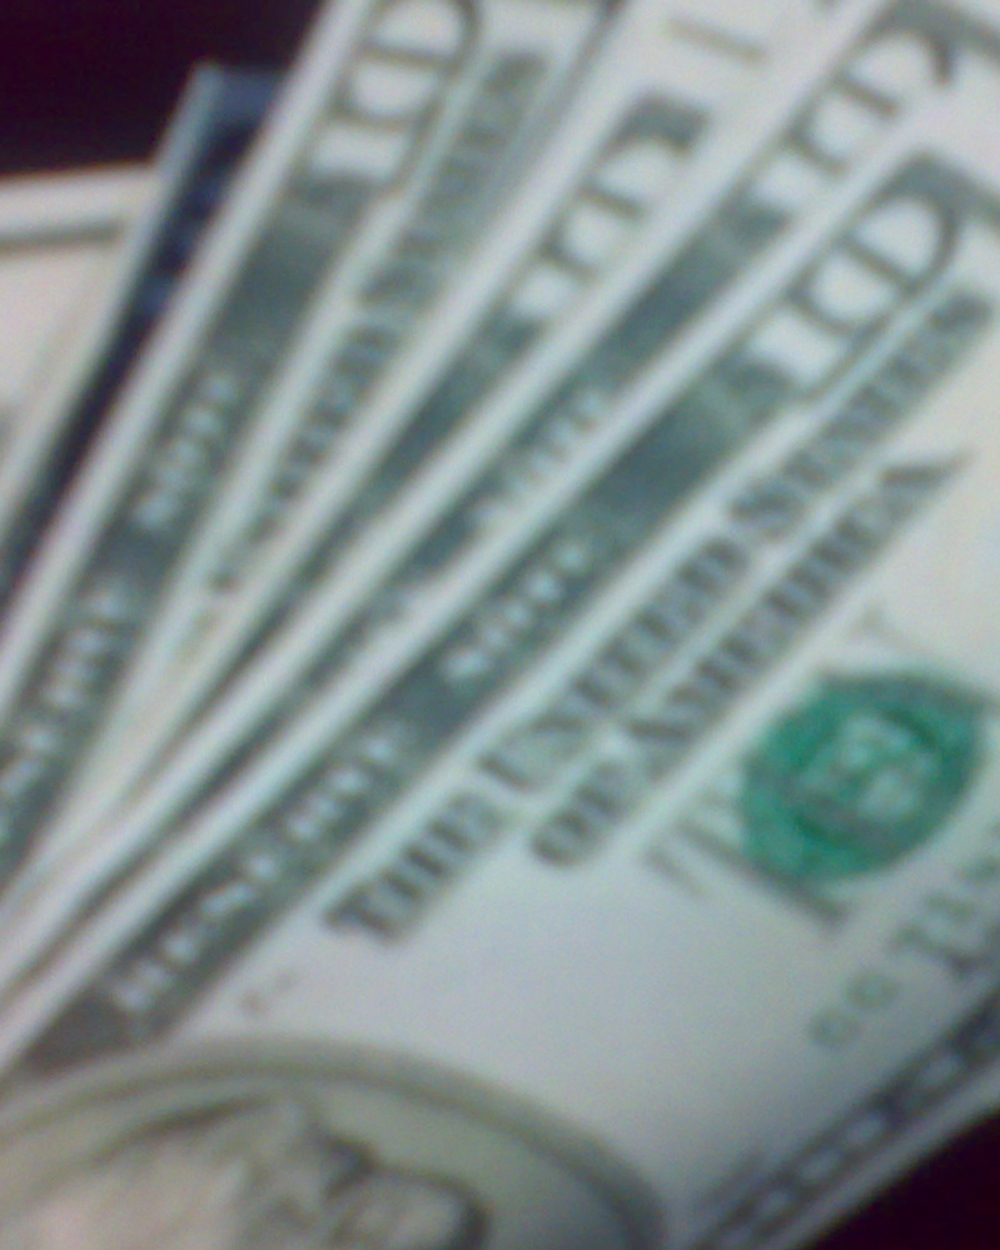 Detail of US money